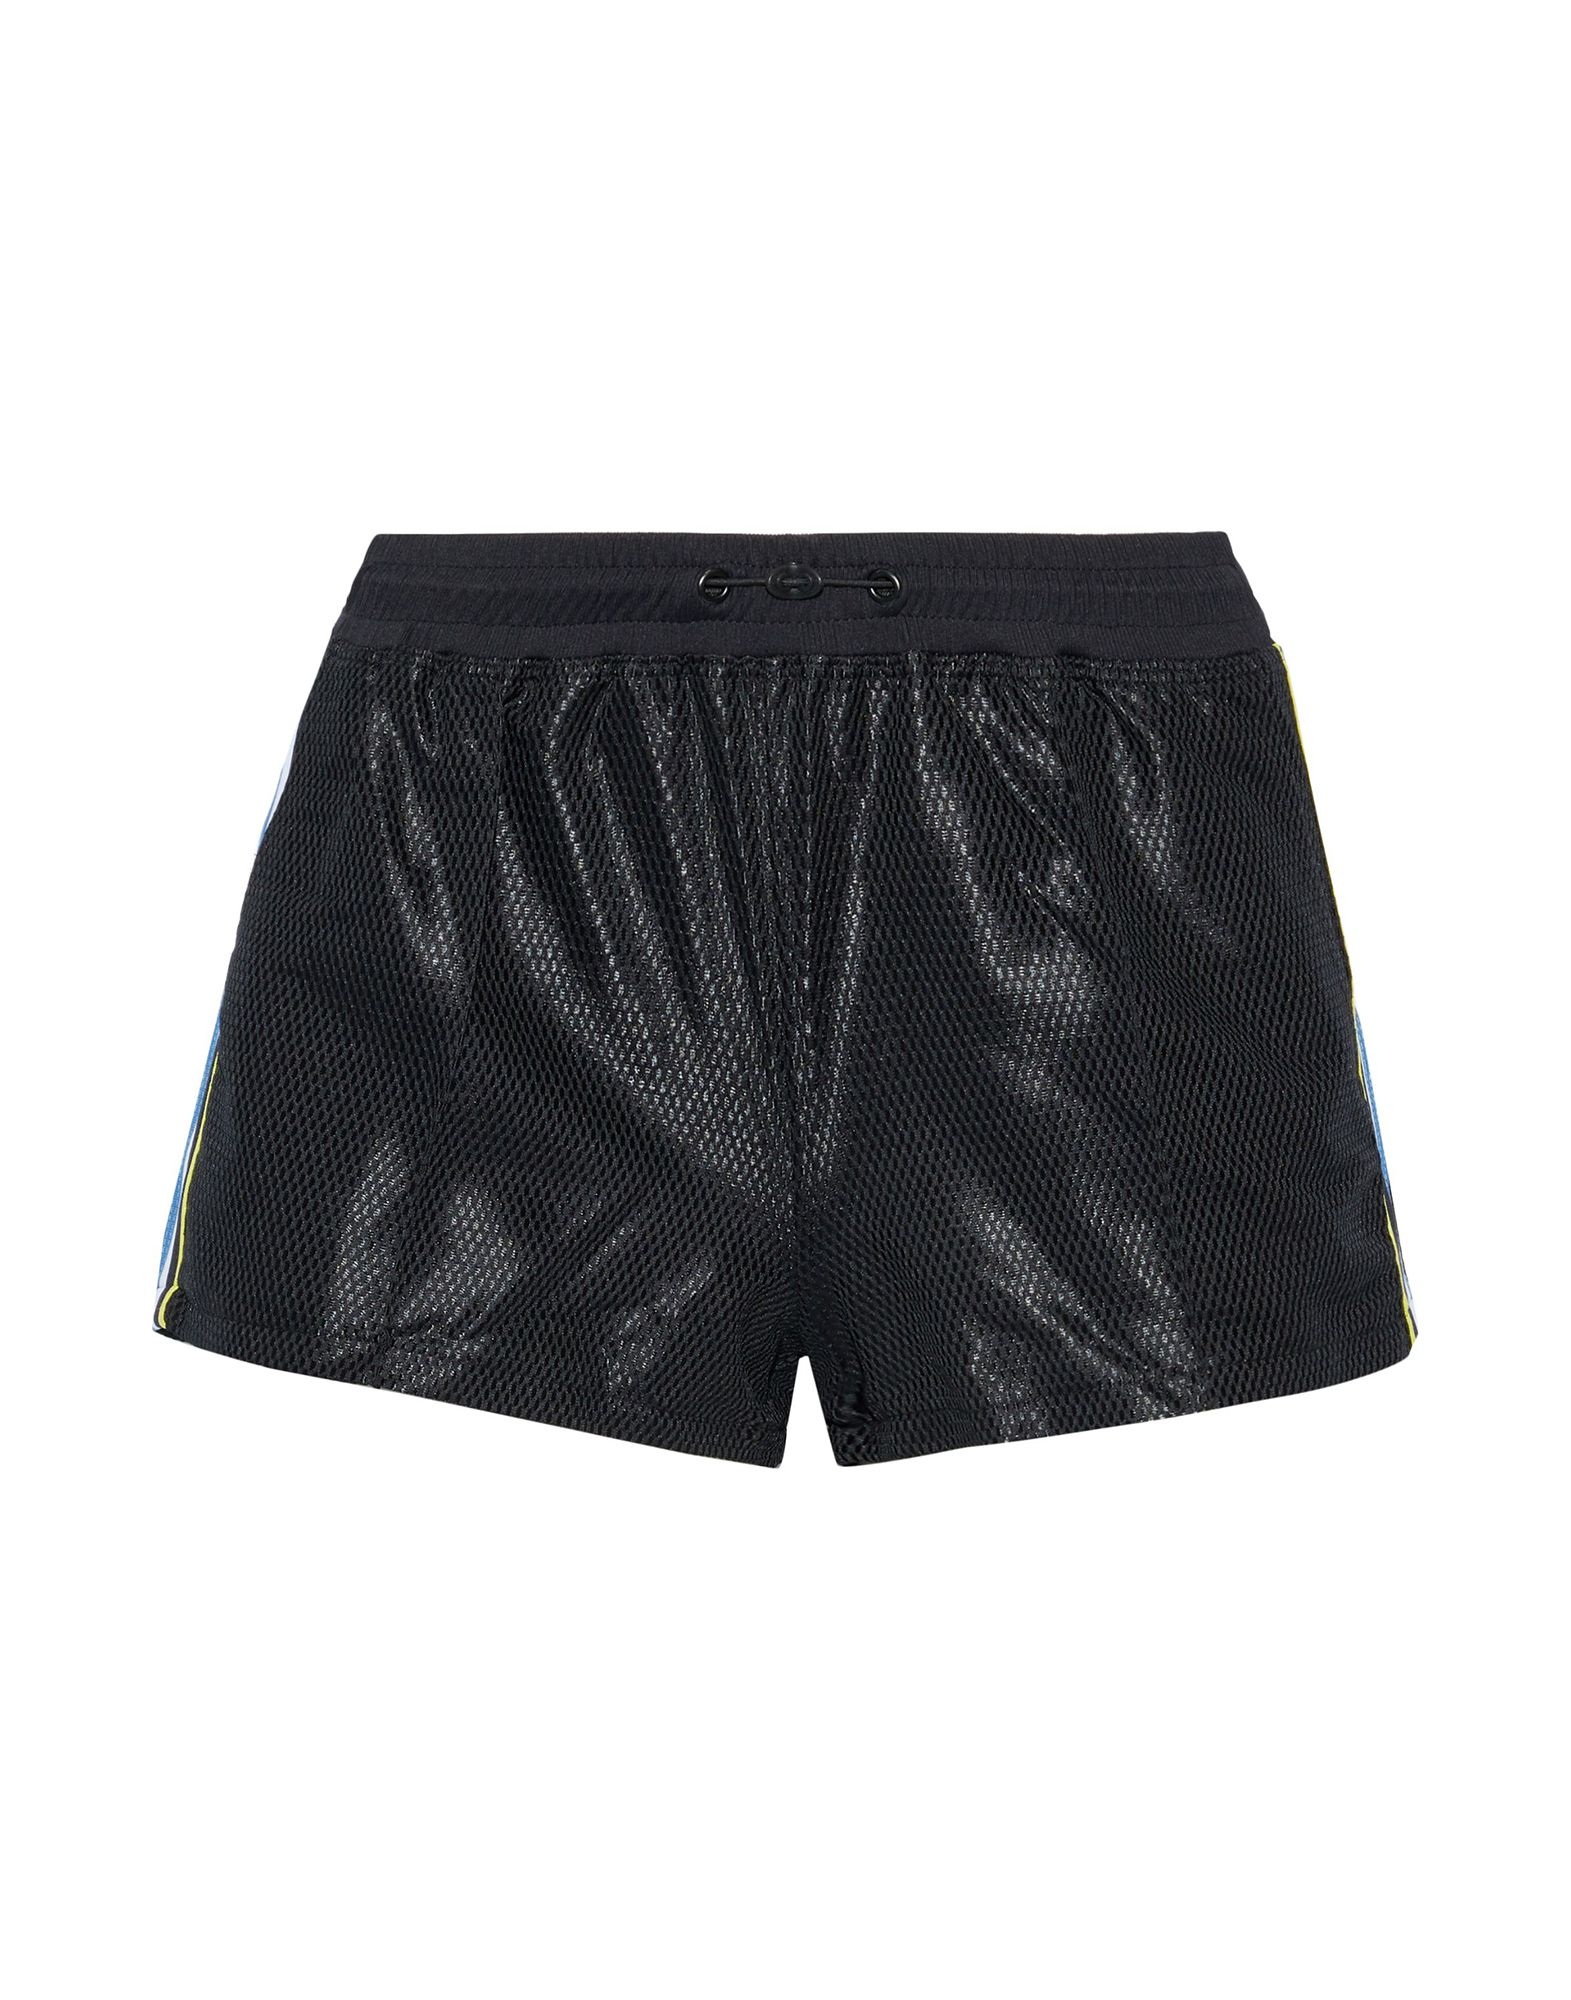 KORAL Shorts. techno fabric, solid color, logo, side seam stripes, mid rise, comfort fit, drawstring closure, multipockets. 100% Polyester, Nylon, Elastane